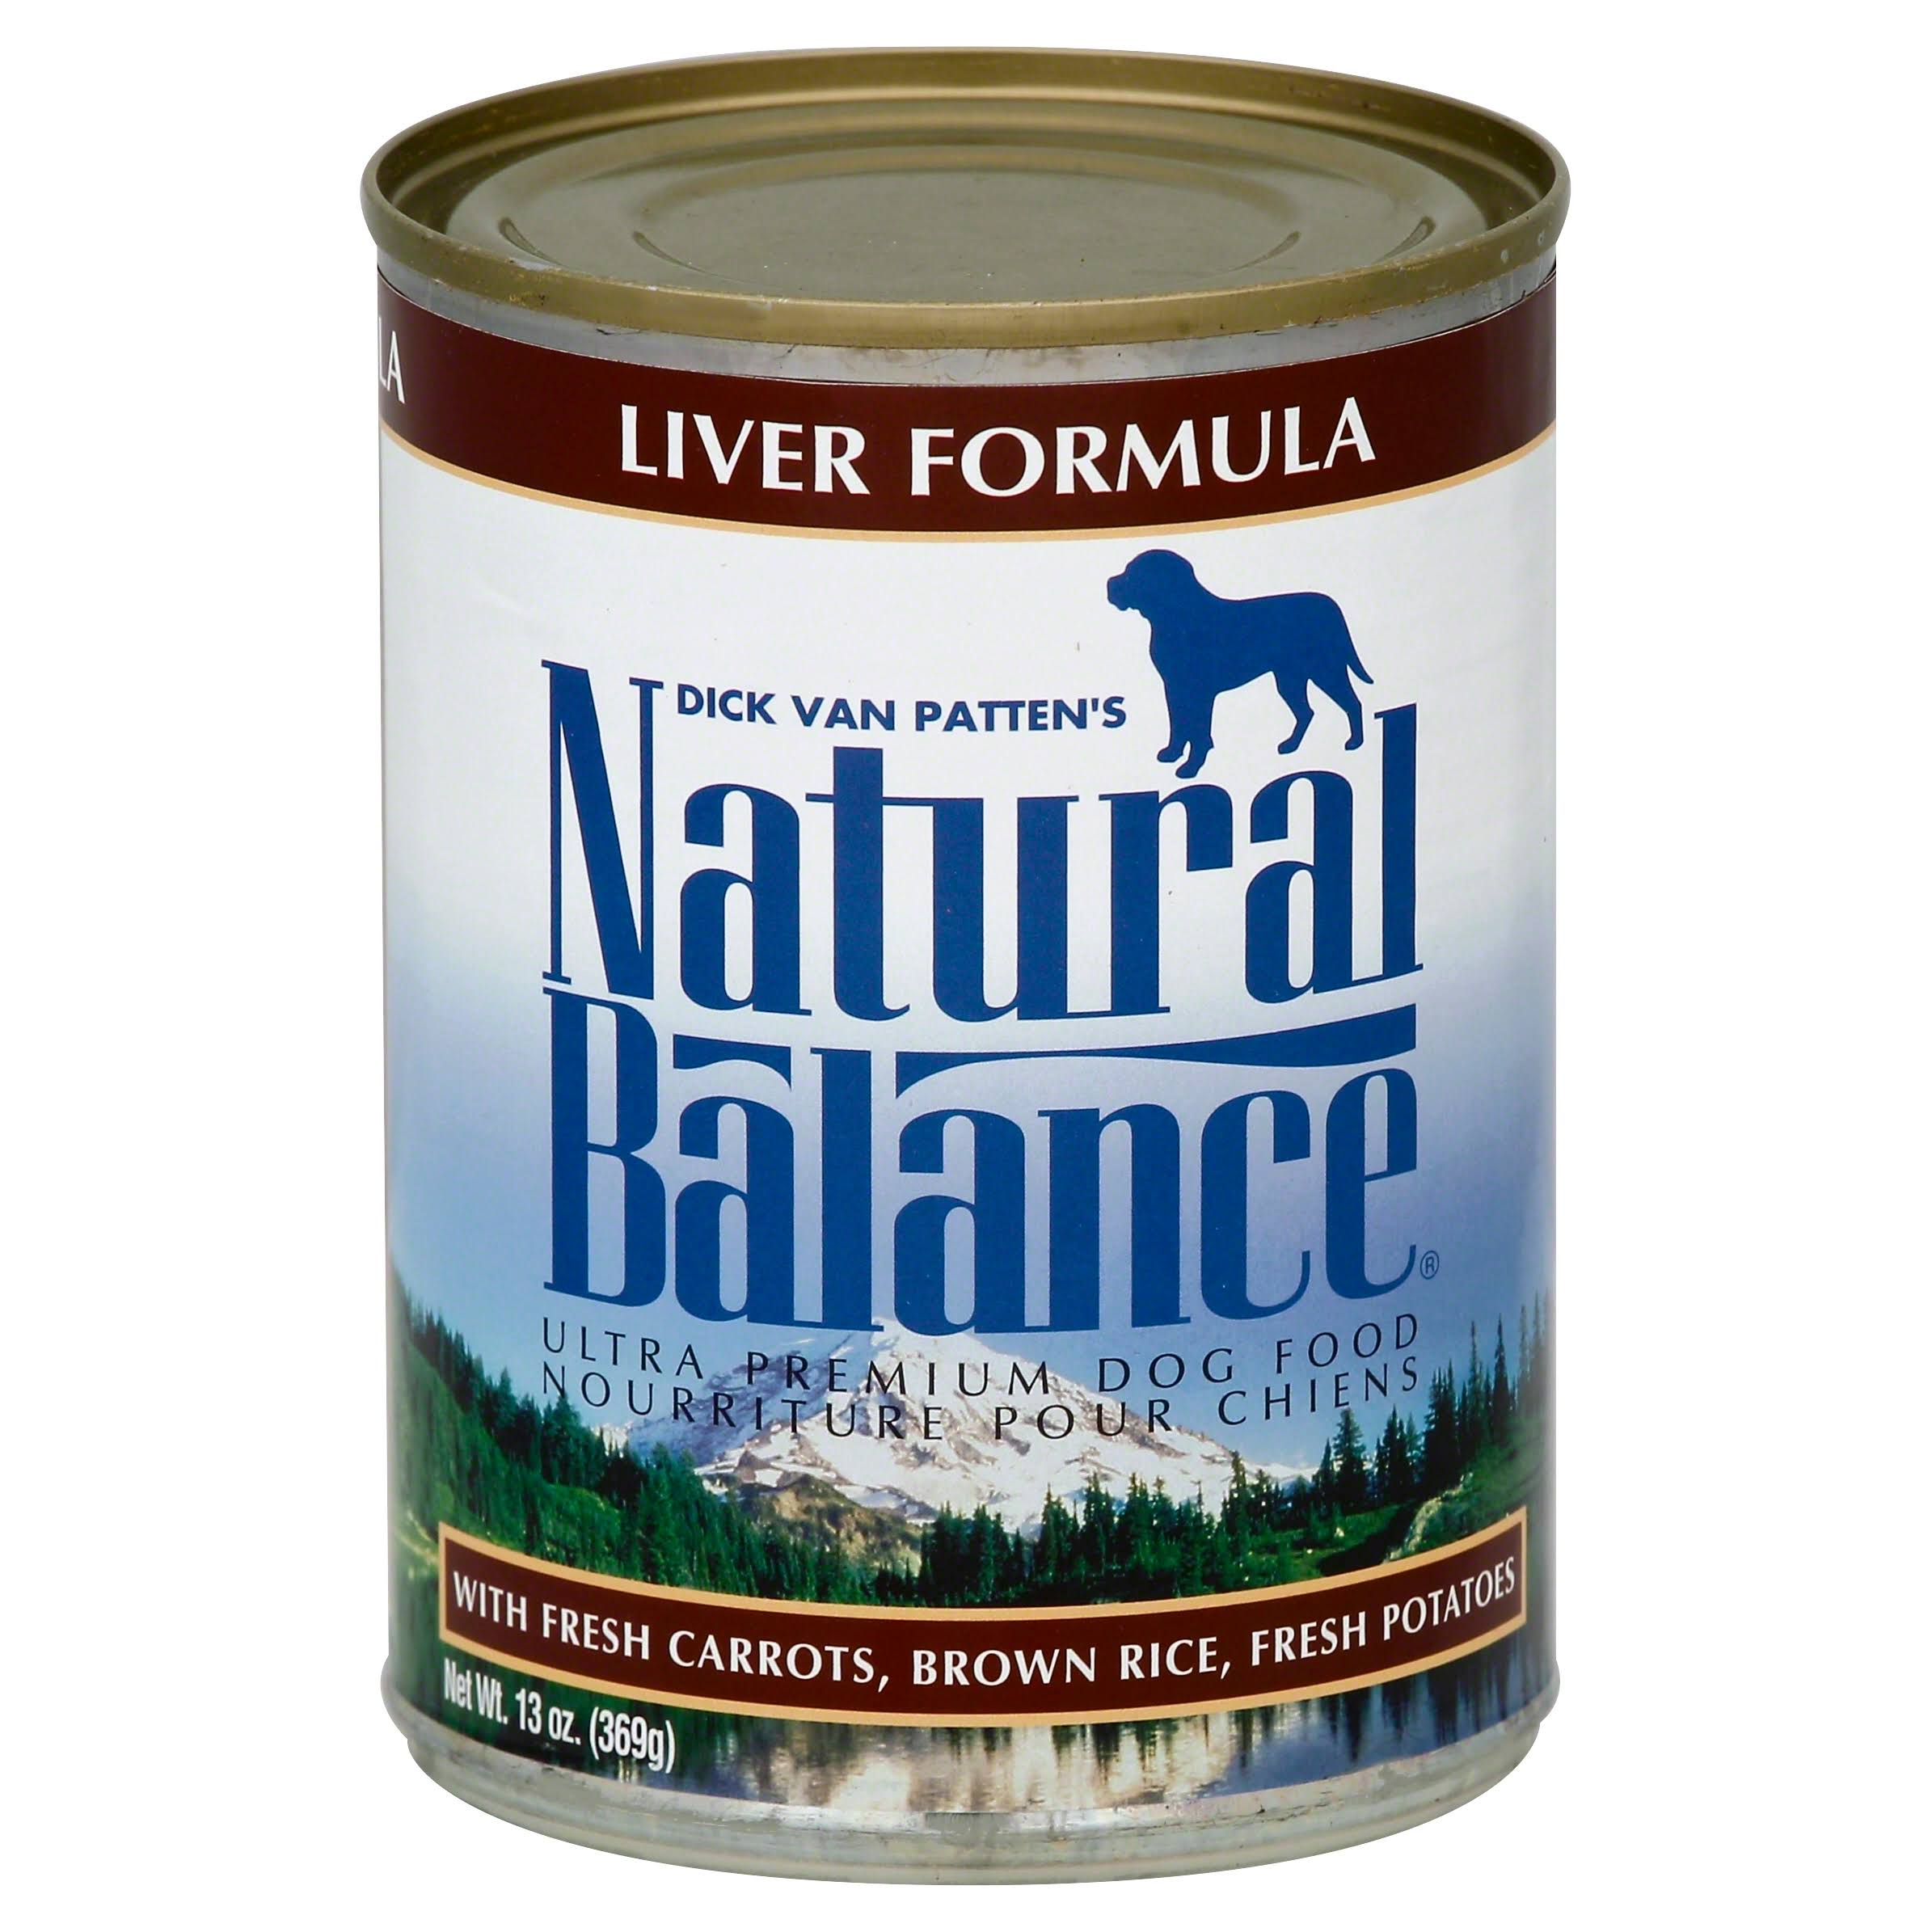 Natural Balance Ultra Premium Dog Food - Liver Formula, 13oz